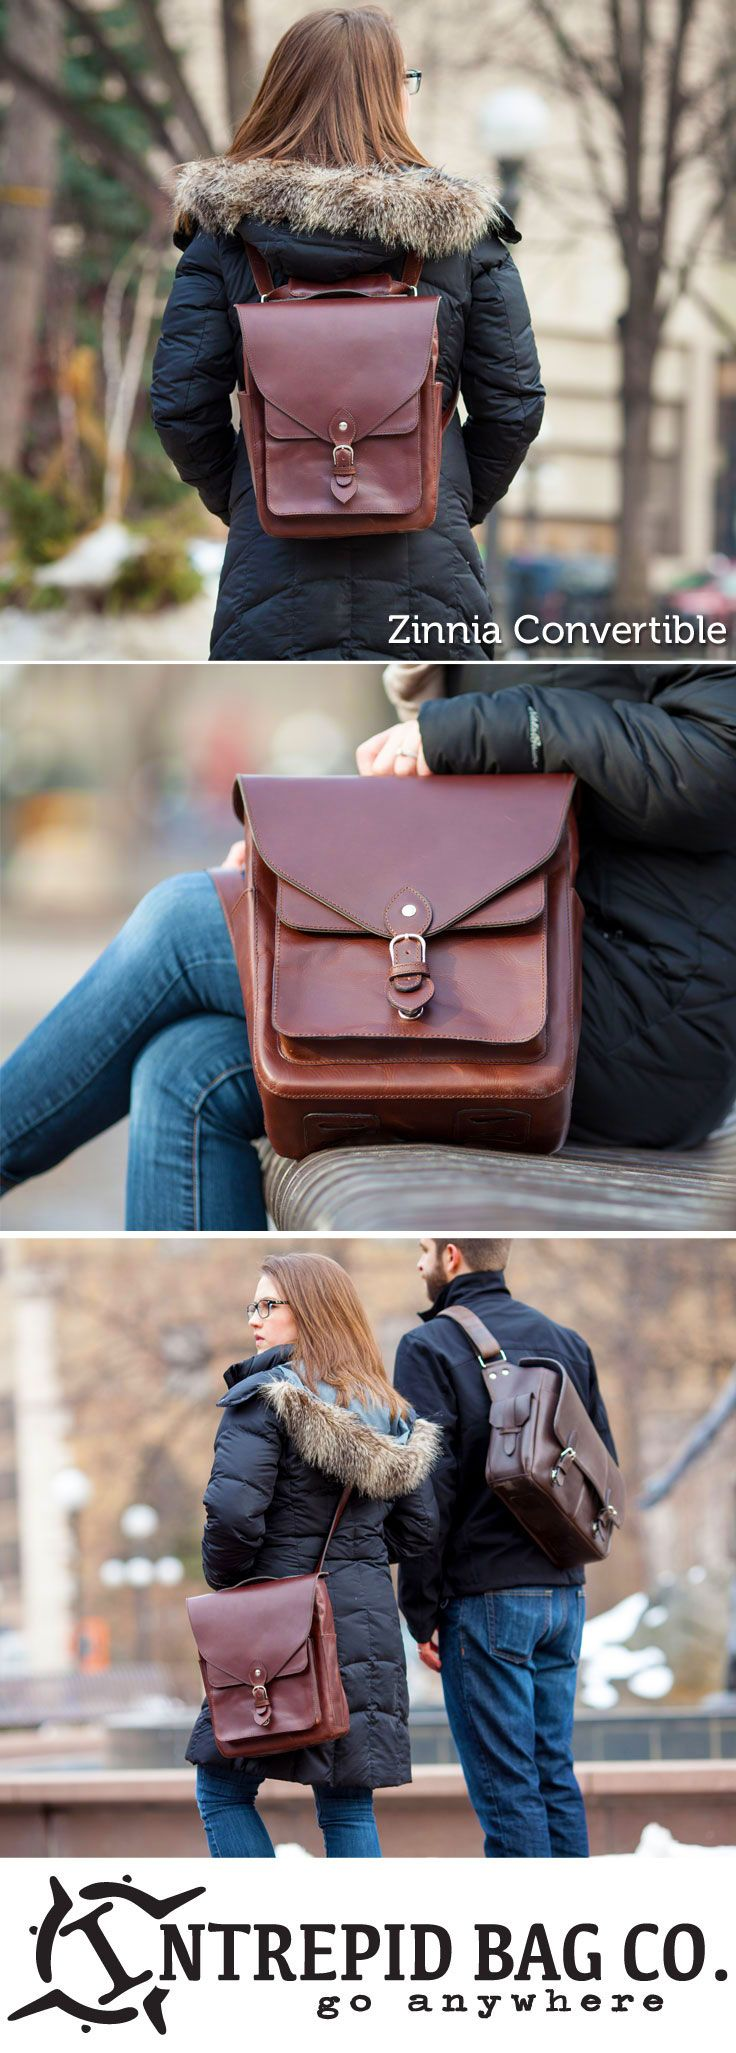 """The Zinnia Convertible. An instantly convertible bag that transforms from a cross-body bag to a backpack in less than a second. Just pull and go! Fits a 13"""" laptop, and much much more!  www.IntrepidBags.com"""